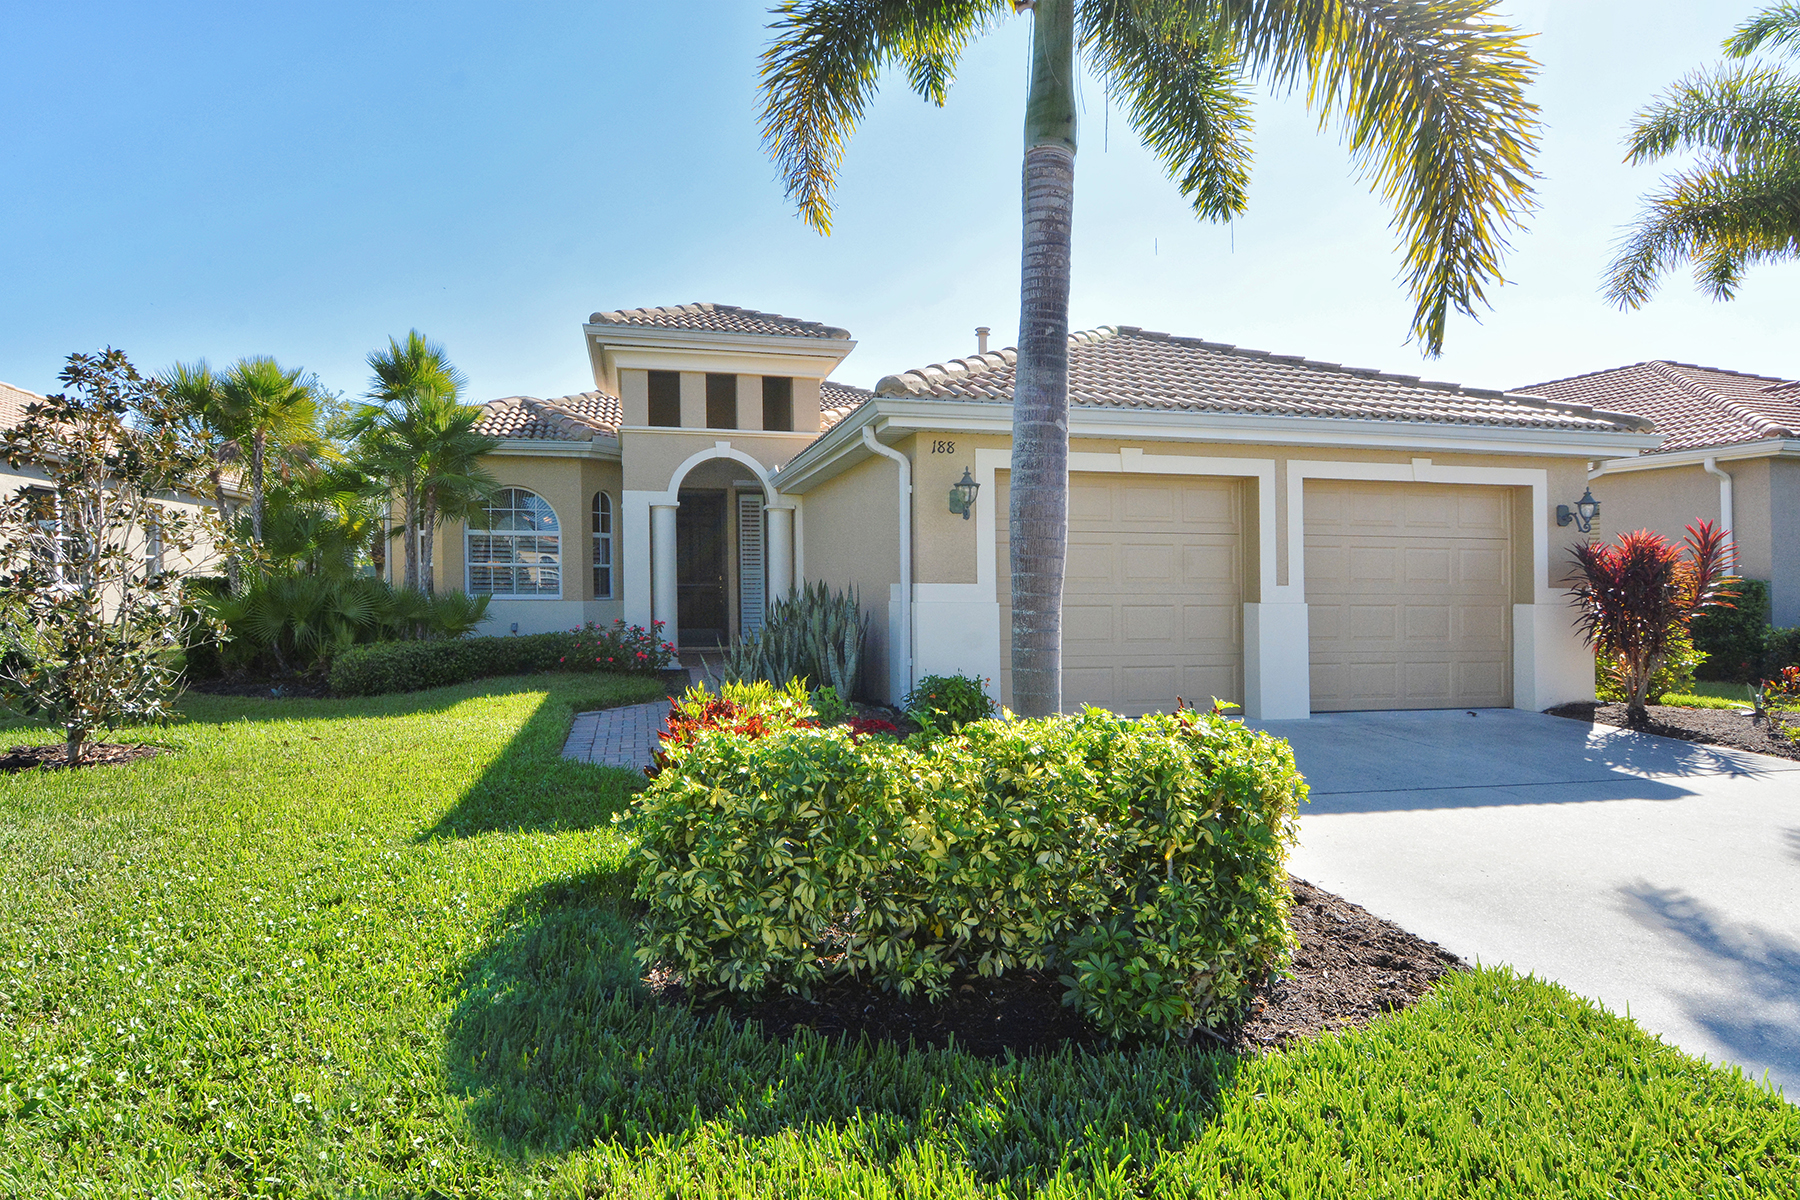 Vivienda unifamiliar por un Venta en VENETIAN GOLF & RIVER CLUB 188 Savona Way North Venice, Florida, 34275 Estados Unidos